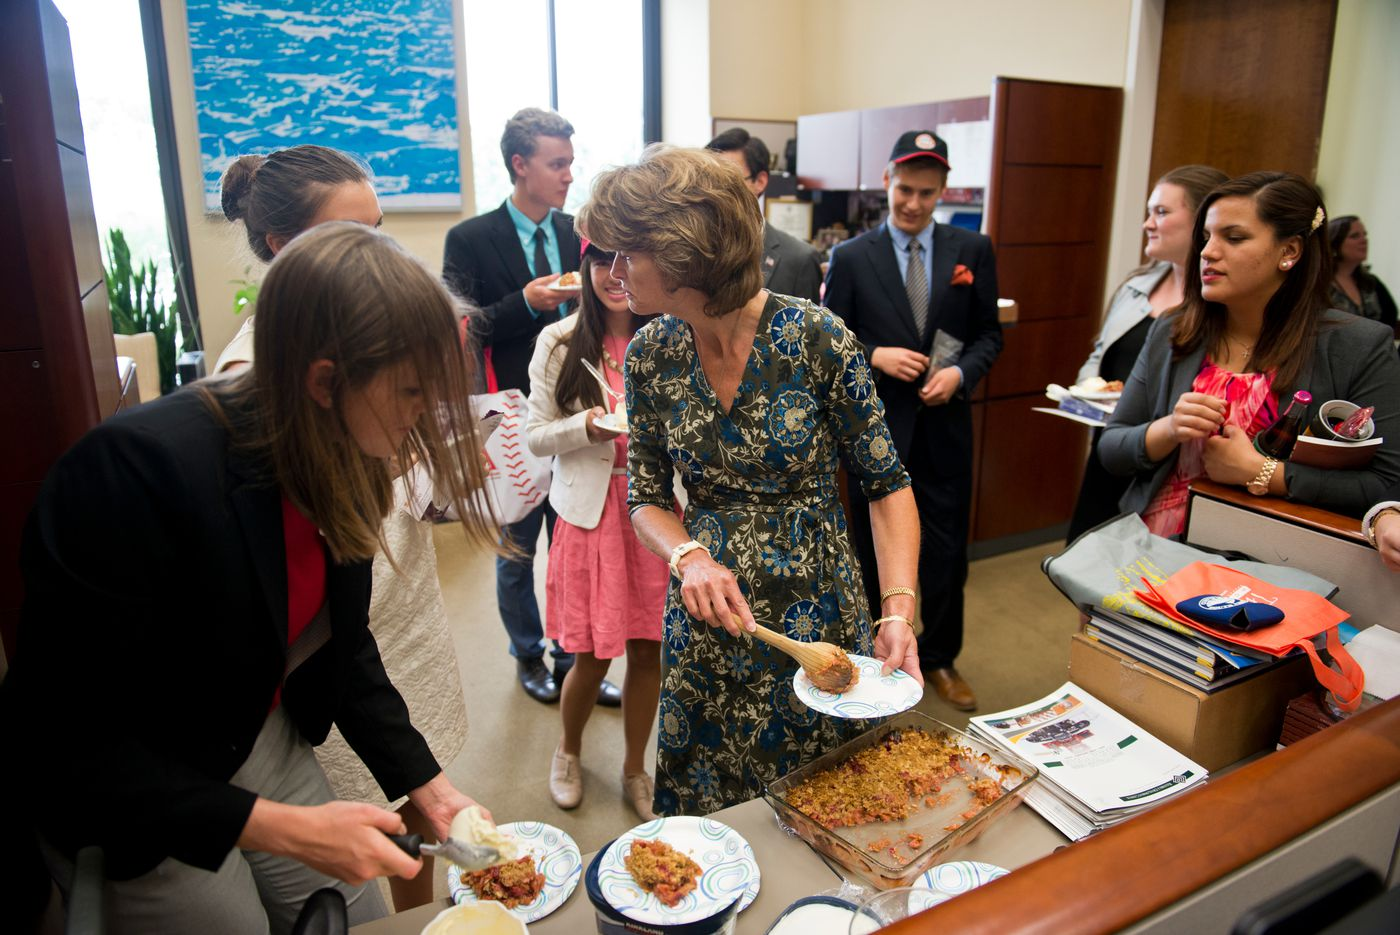 Sen. Lisa Murkowski dishes up rhubarb crisp to her interns on their last day working with her office on Thursday, June 25, 2015. Twenty recent high school graduates spend one month interning with Murkowski each summer, ten at at time. (Marc Lester / Alaska Dispatch News )